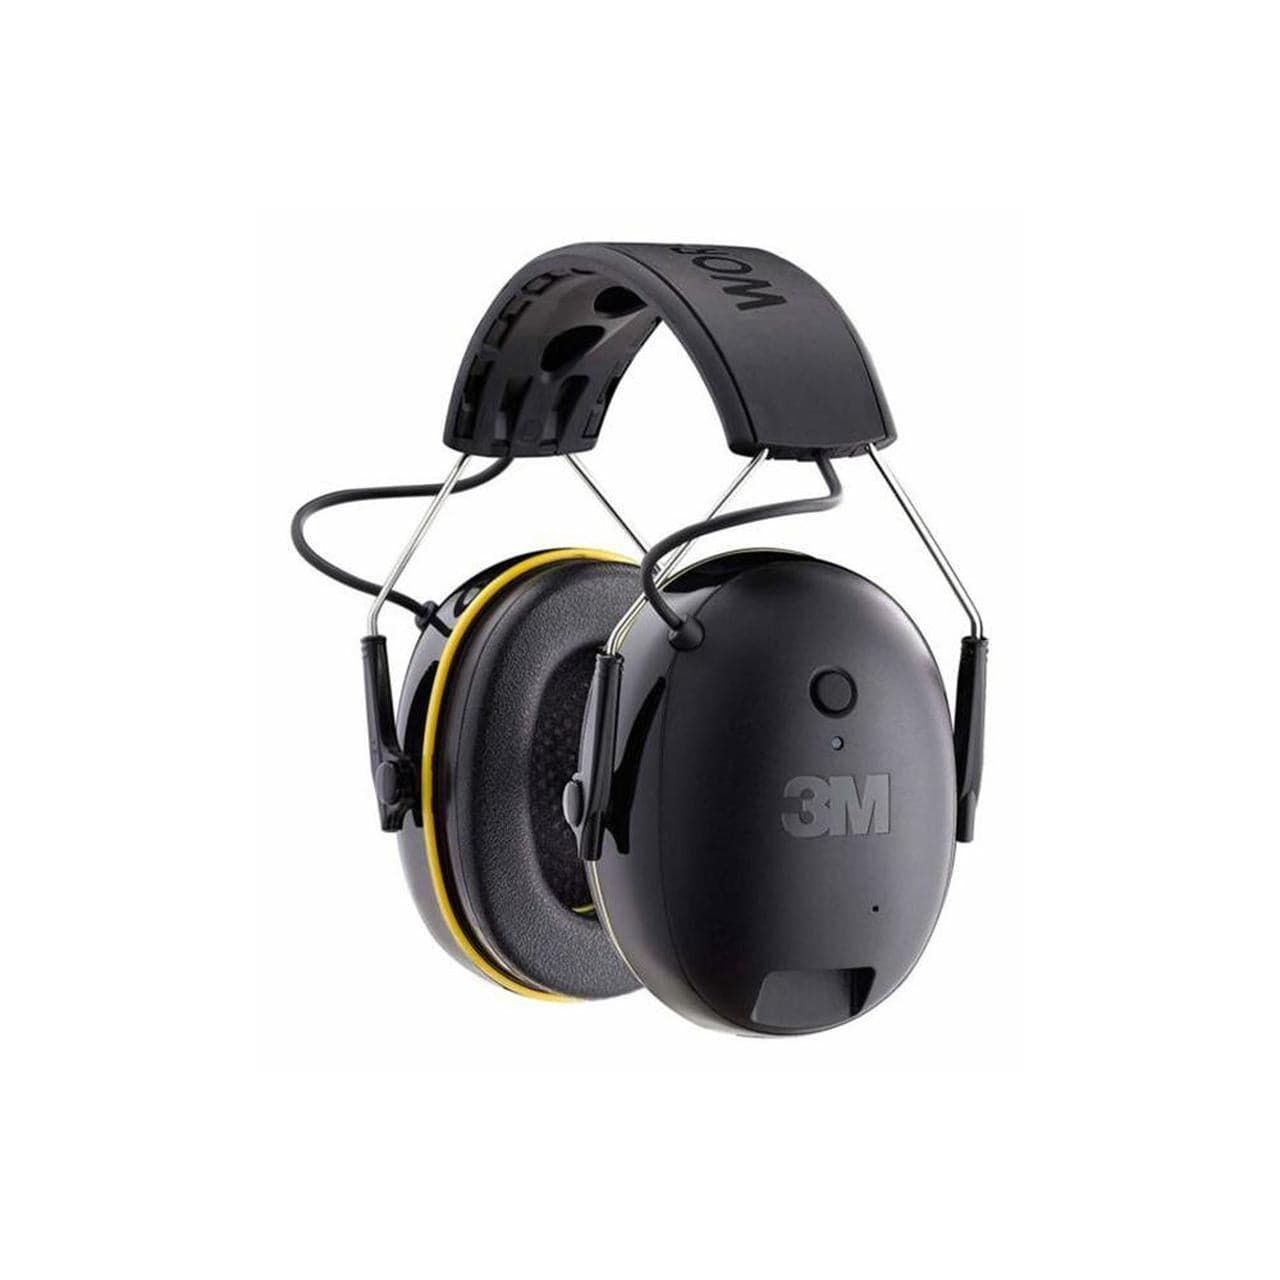 3M WorkTunes™ Wireless Hearing Ear Muffs + Bluetooth® (NRR 24)